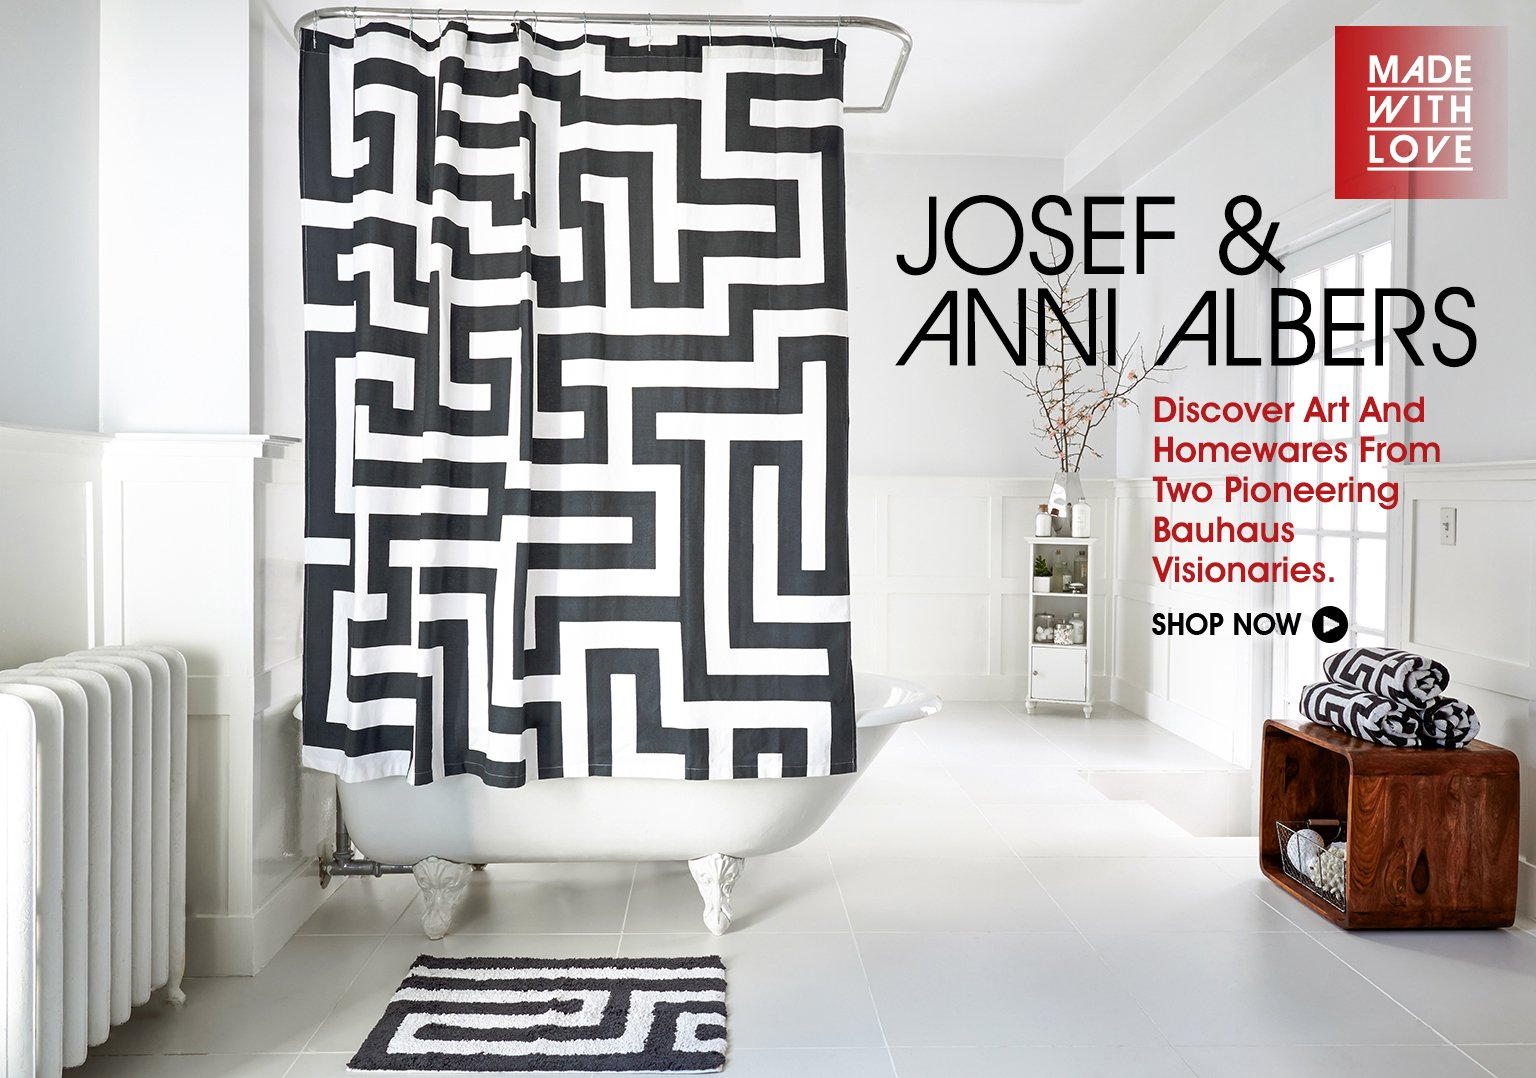 Discover Art and Homewares From Josef & Anni Albers.